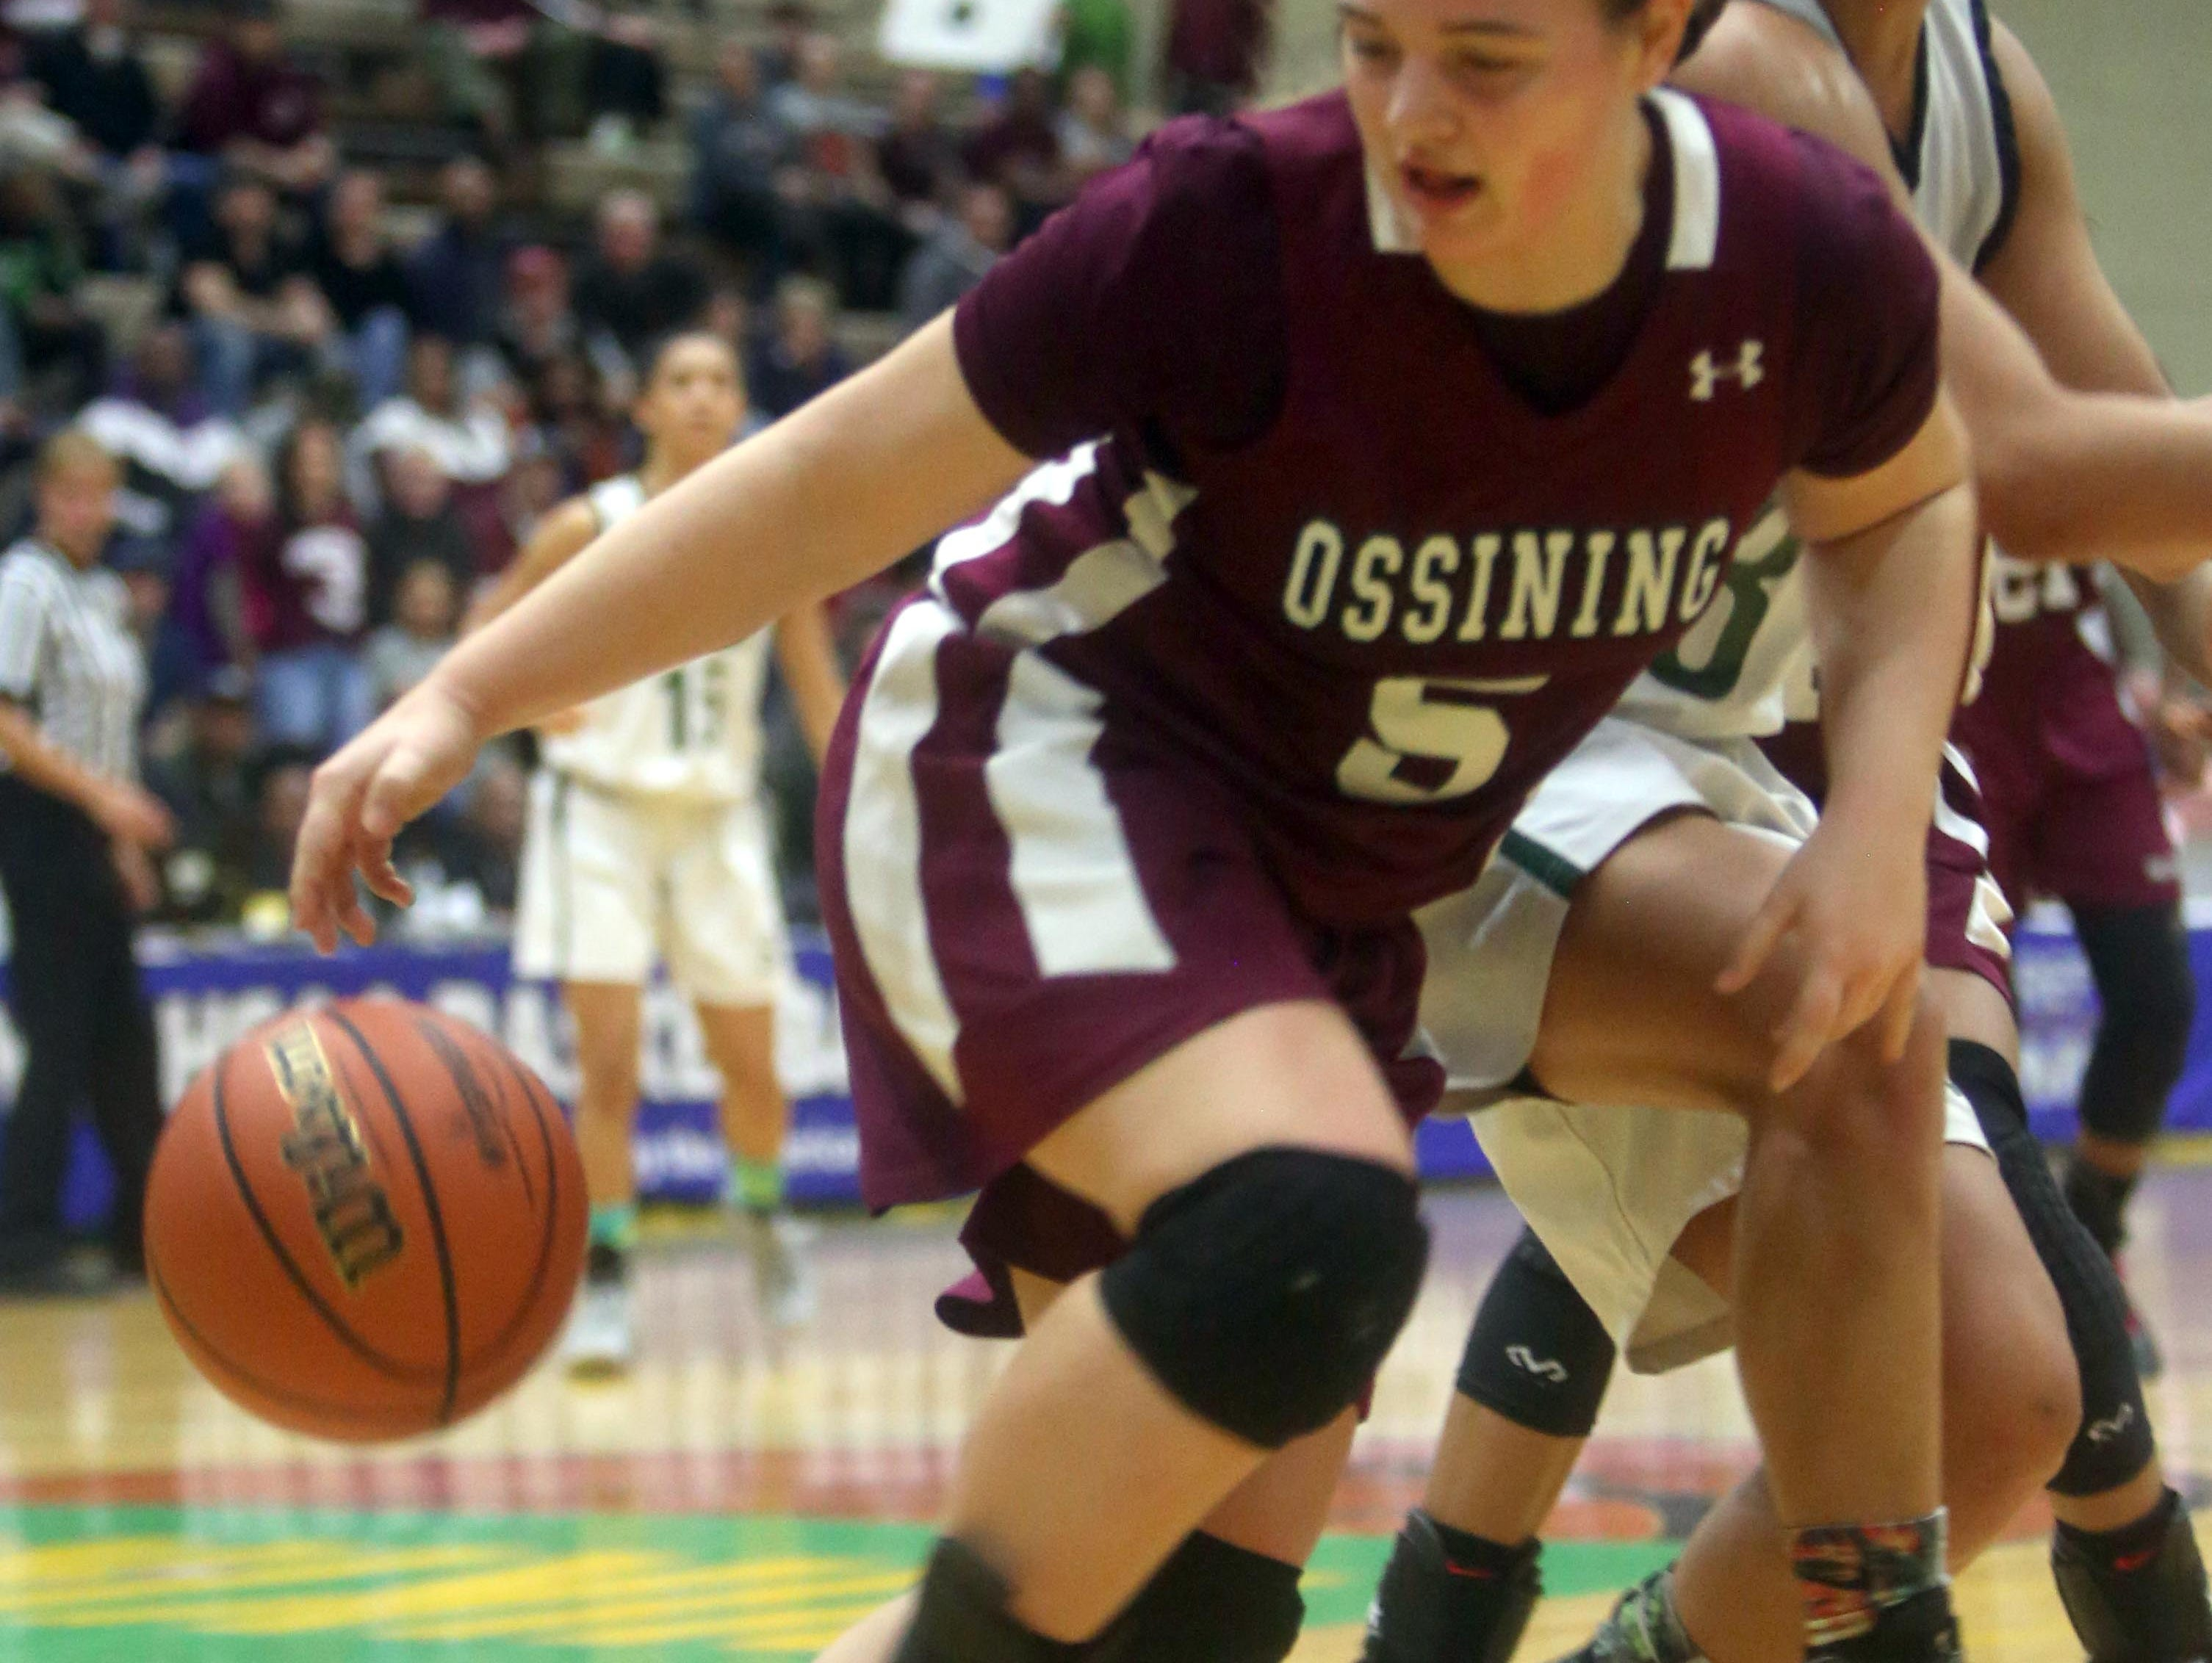 Ossining's Kelsey Quain grabs a rebound during the New York State Class AA championship at Hudson Valley Community College in Troy March 12, 2016.